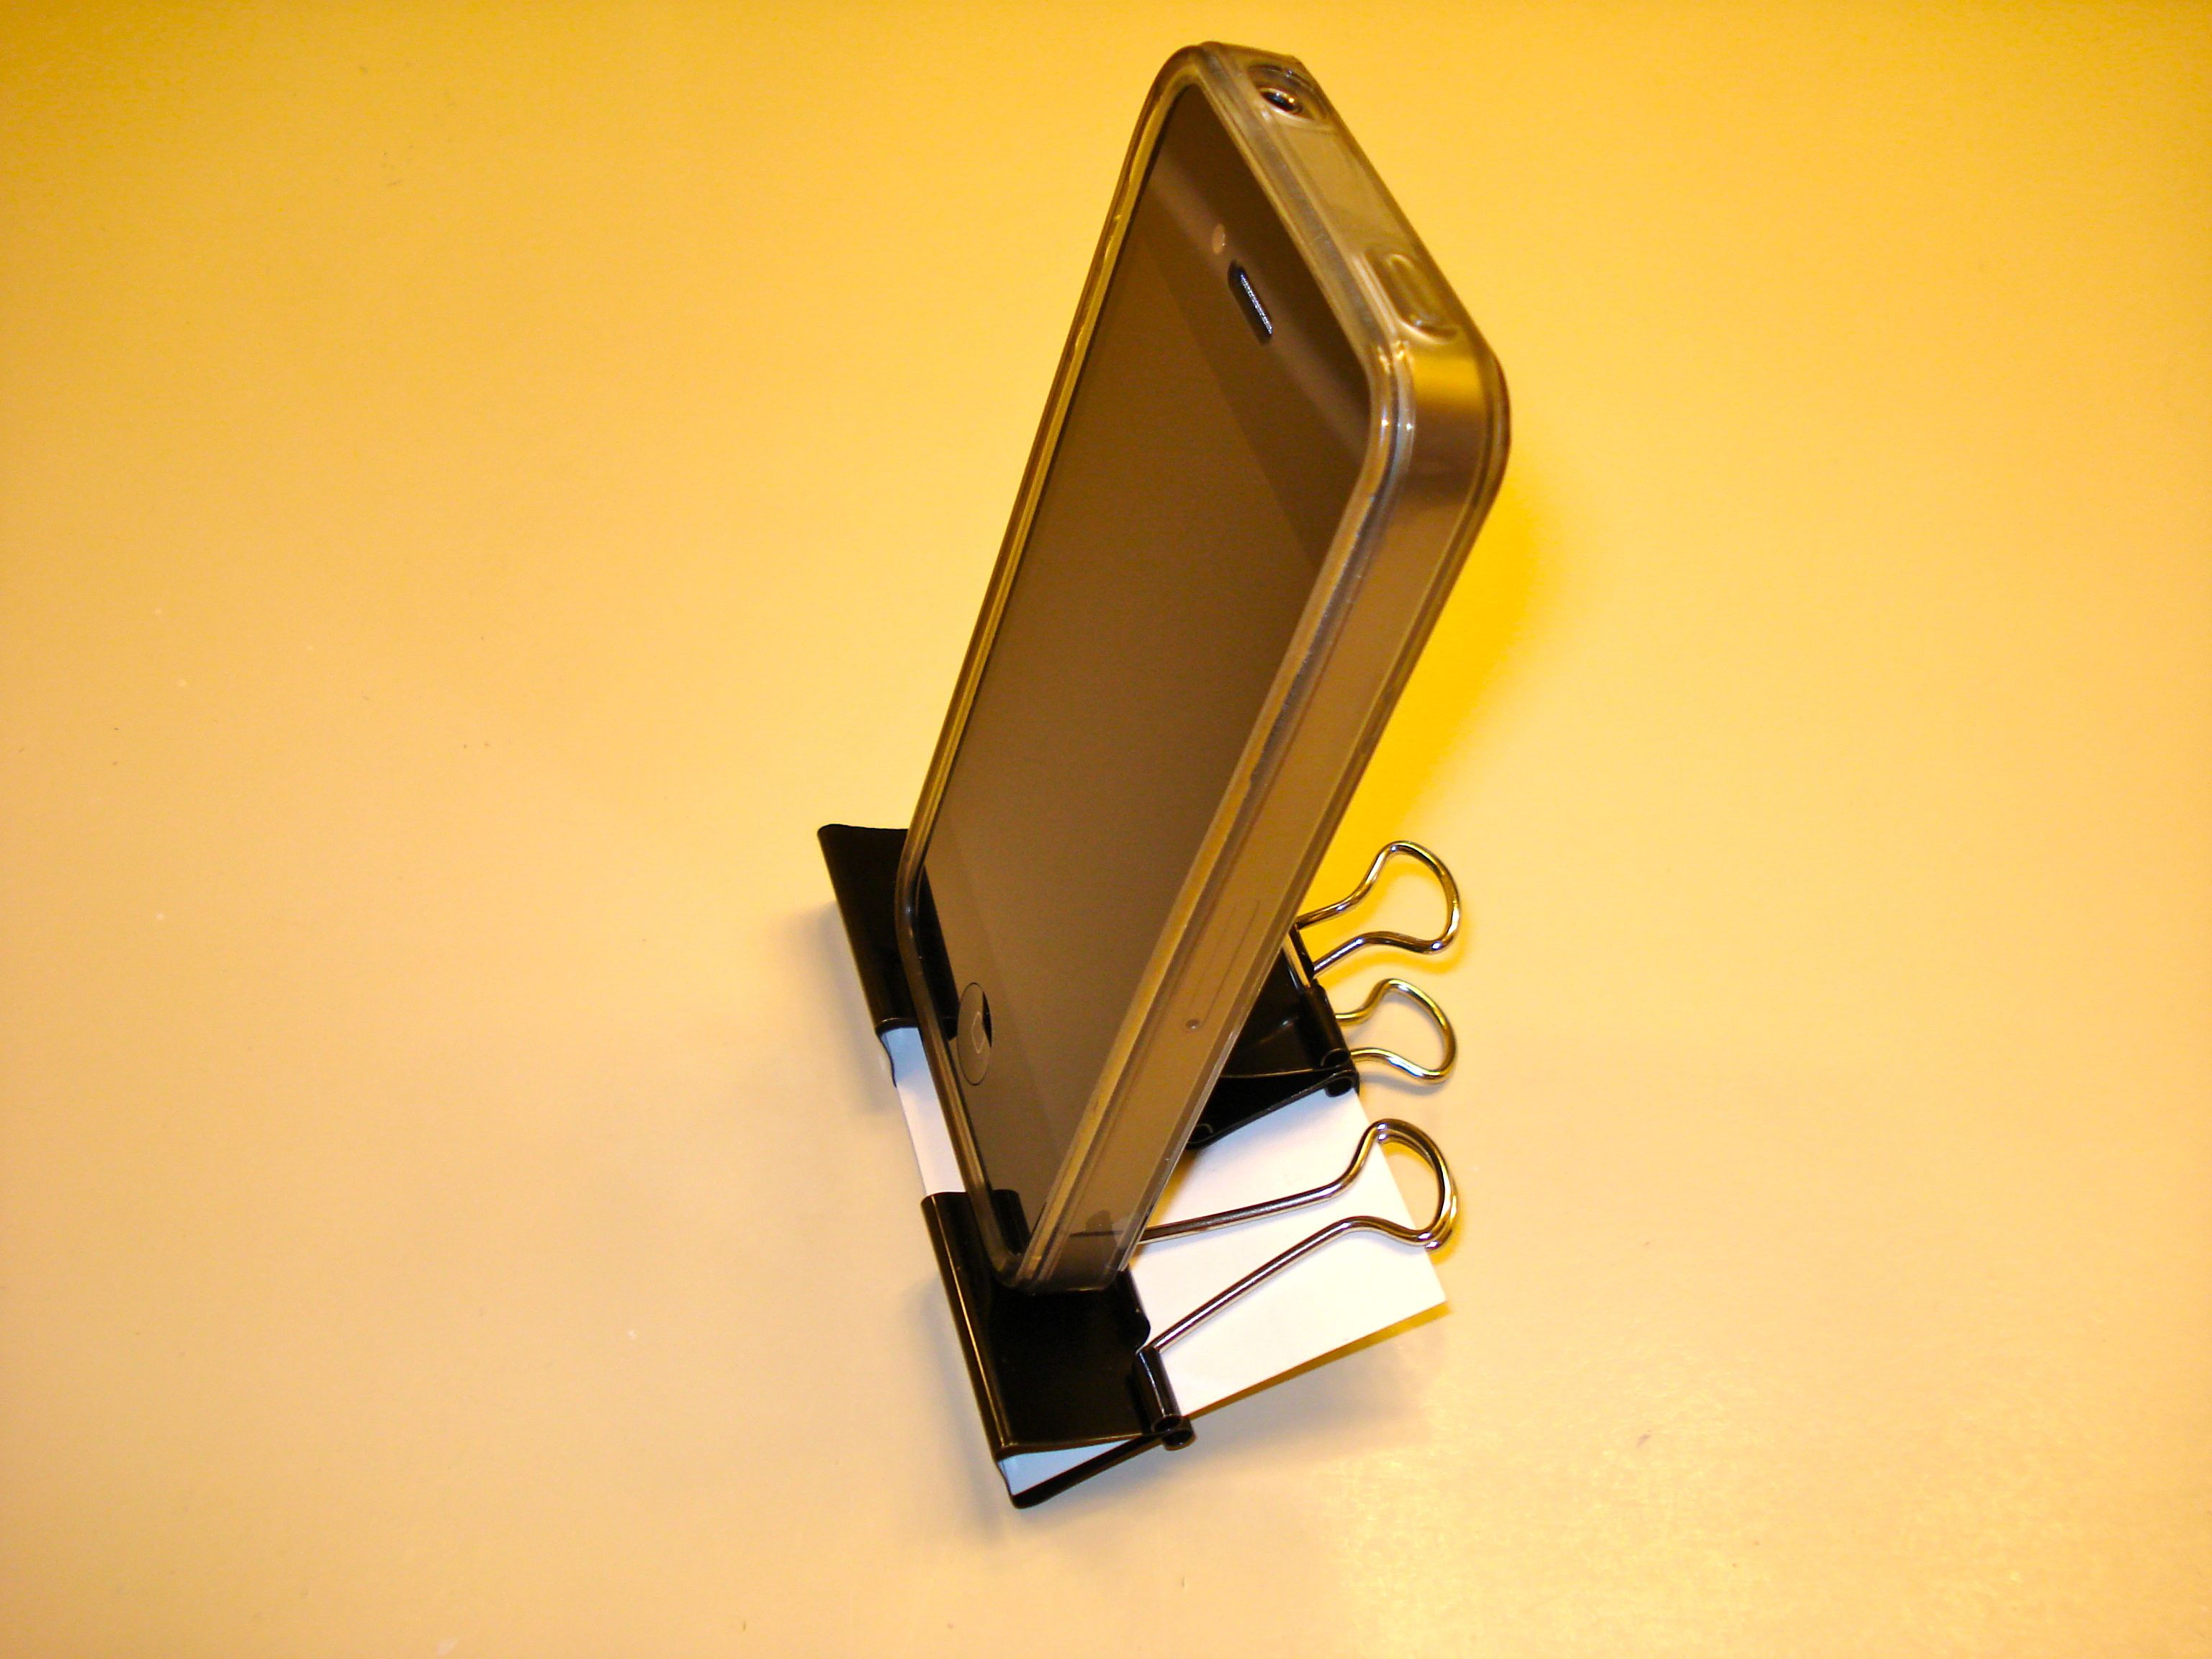 5 diy phone stand you can make easy by yourself diy